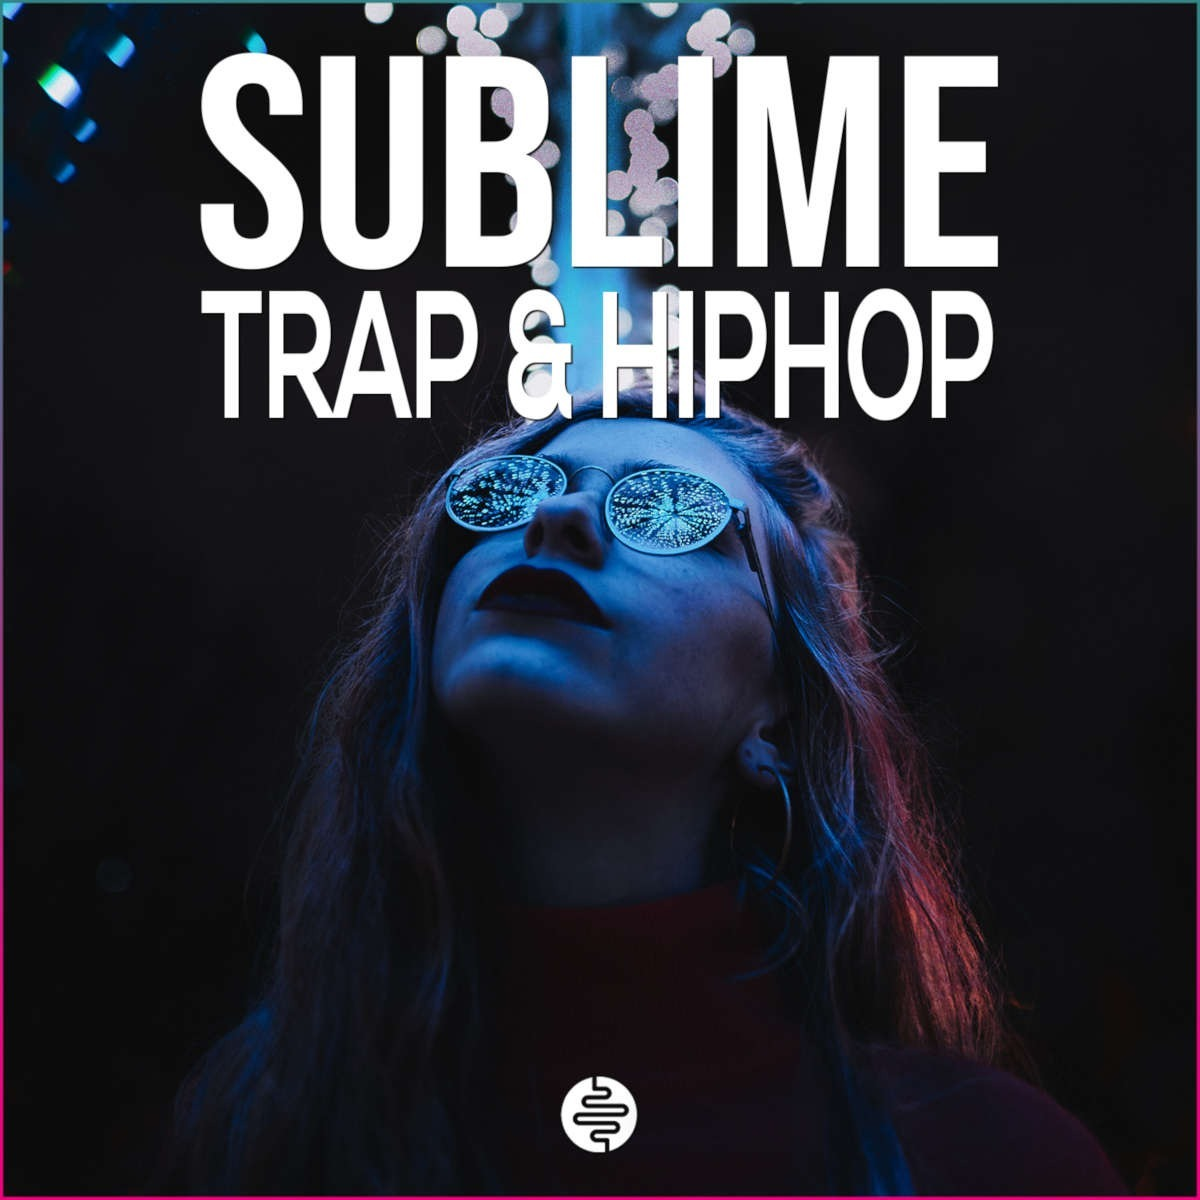 Sublime Trap & Hiphop